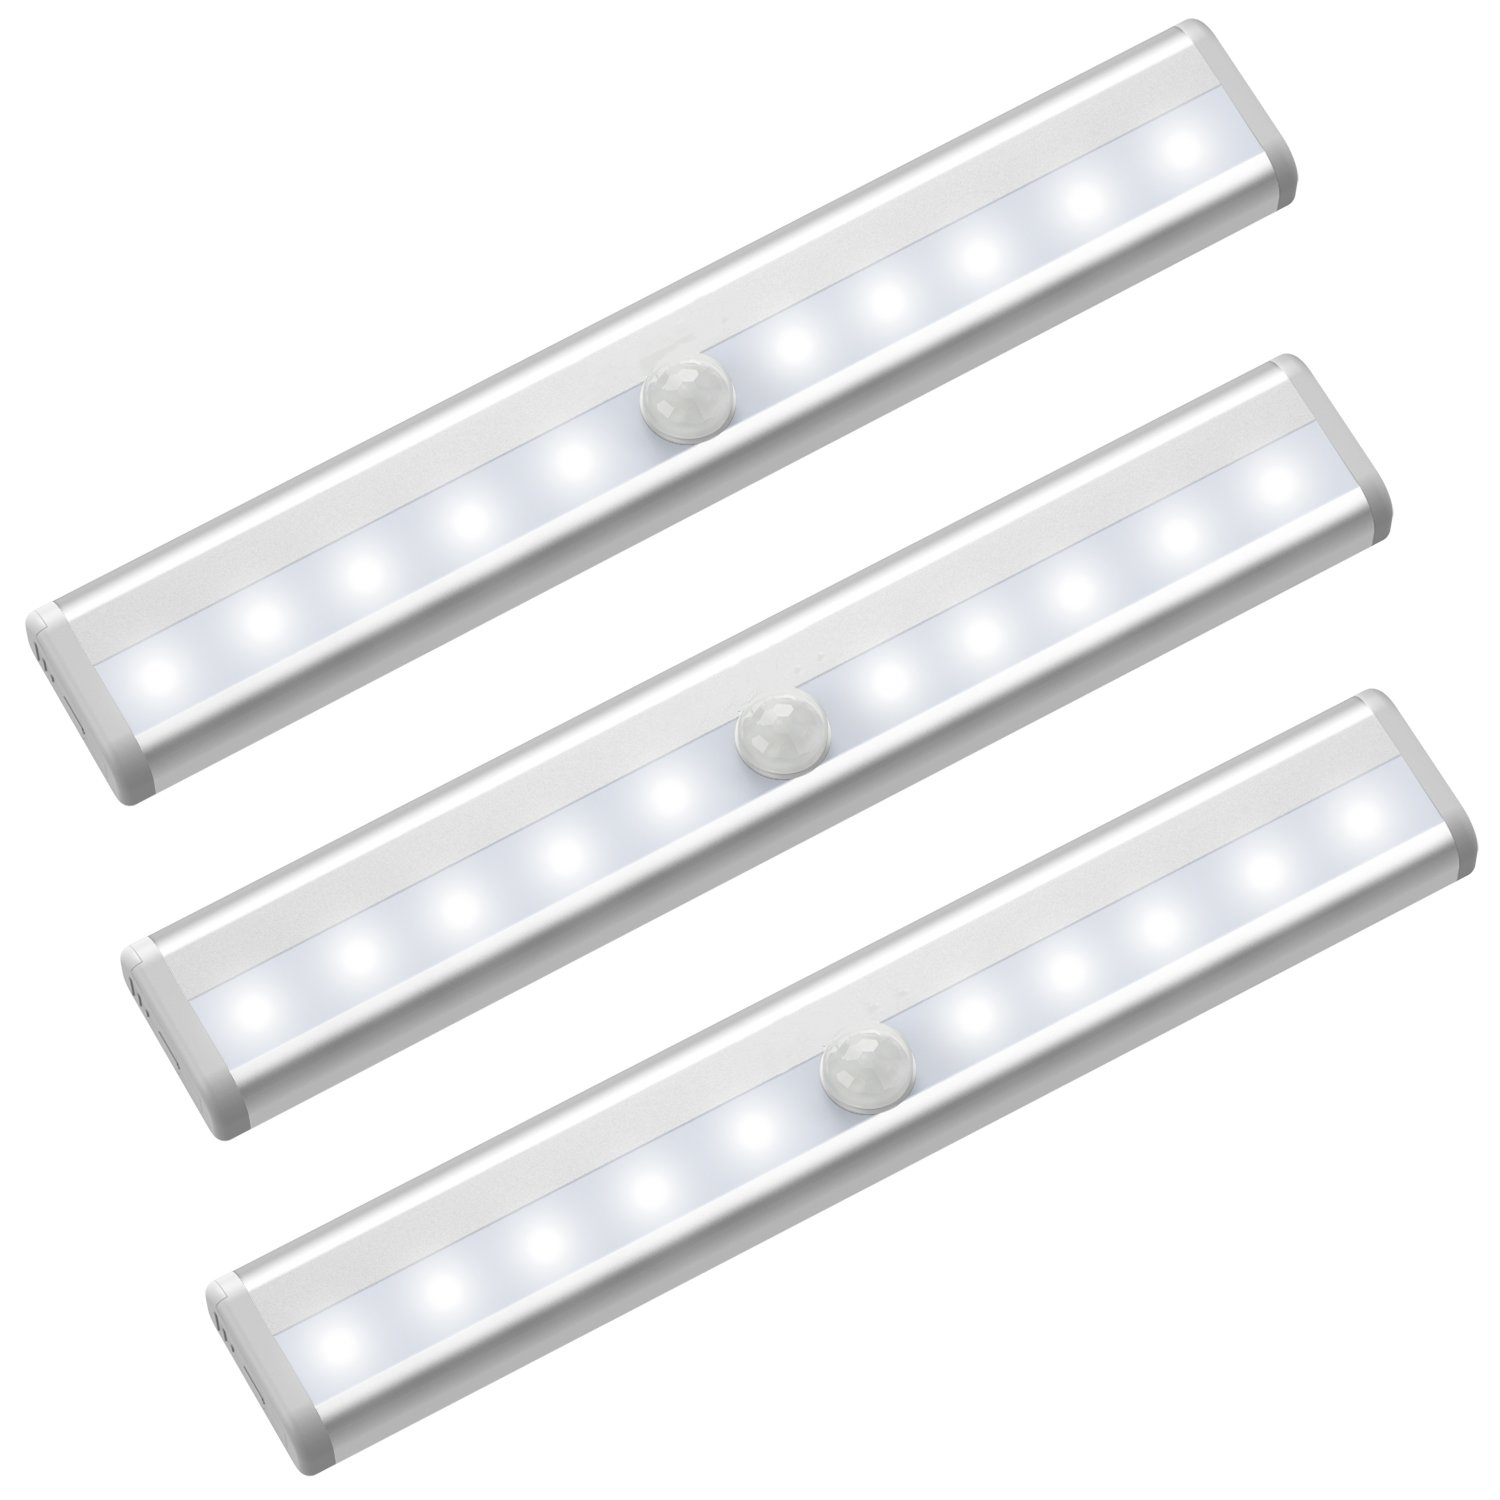 Motion Sensor Closet Lights, Battery Operated 10 LED Closet Light Wireless Under Cabinet Light with Magnet Security Closet Light